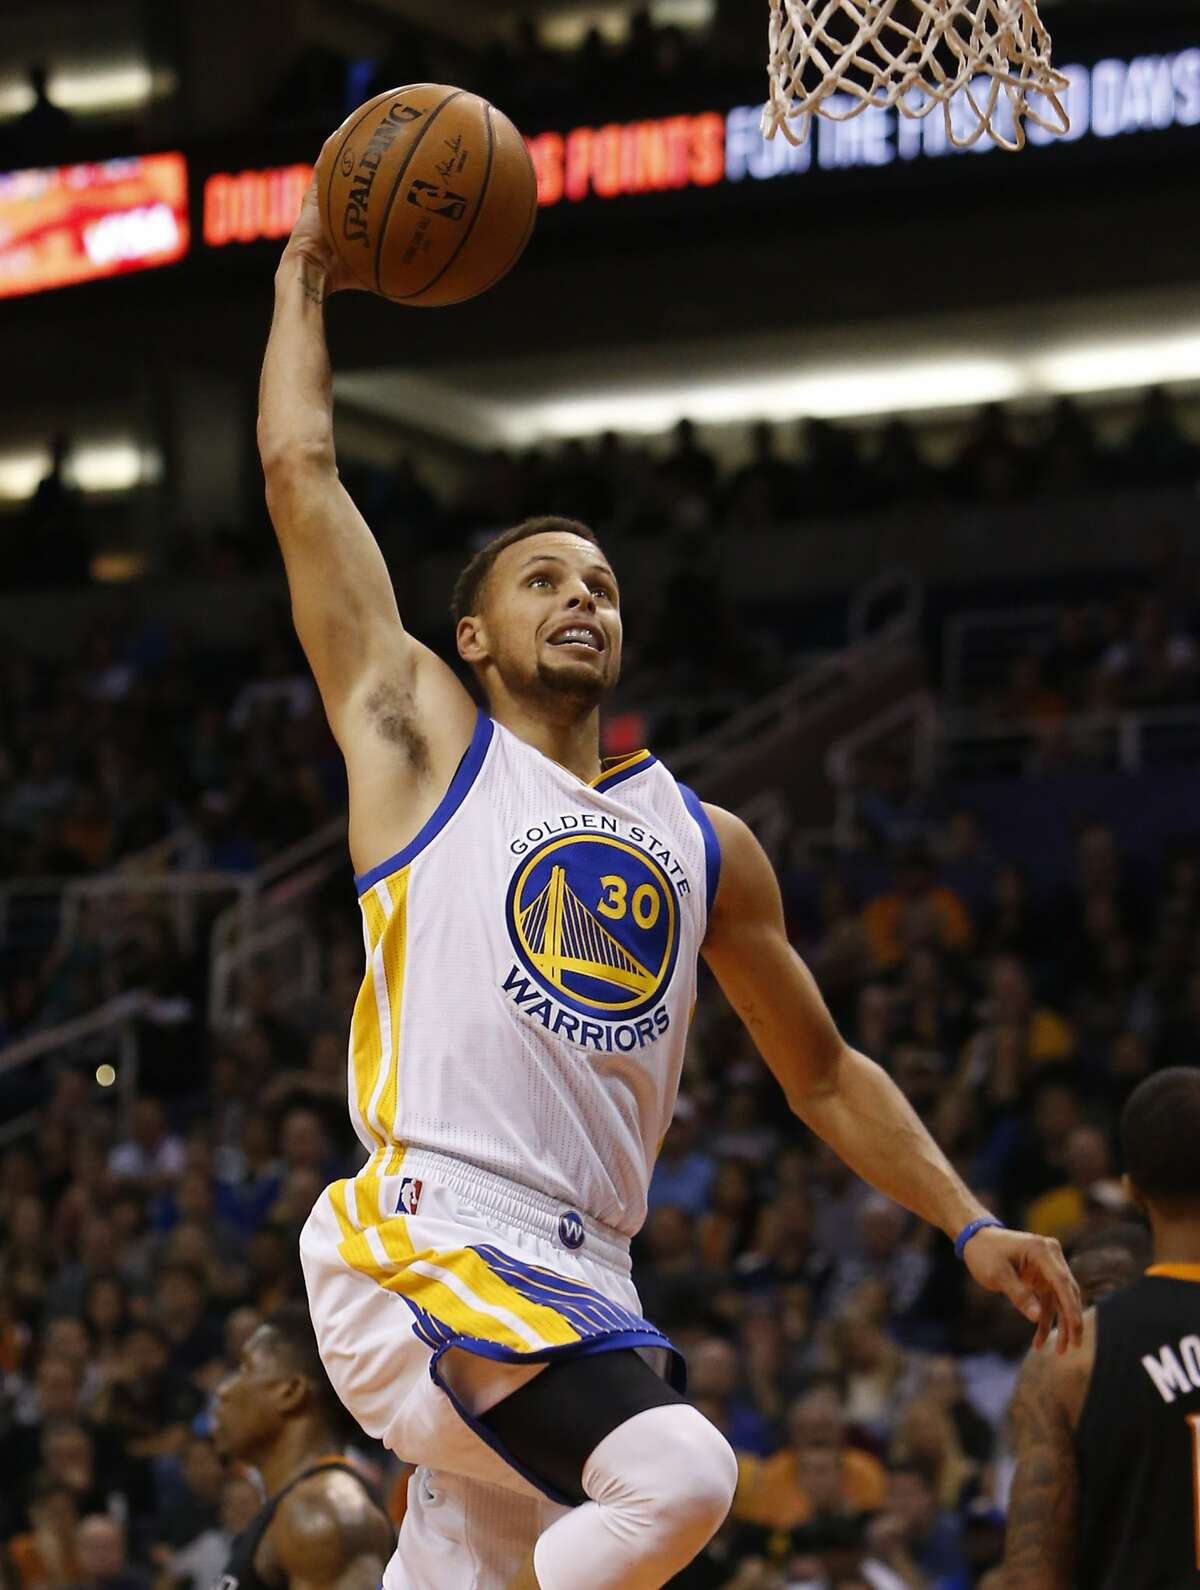 Golden State Warriors guard Stephen Curry (30) scores against the Phoenix Suns in the first quarter during an NBA basketball game, Friday, Nov. 27, 2015, in Phoenix.